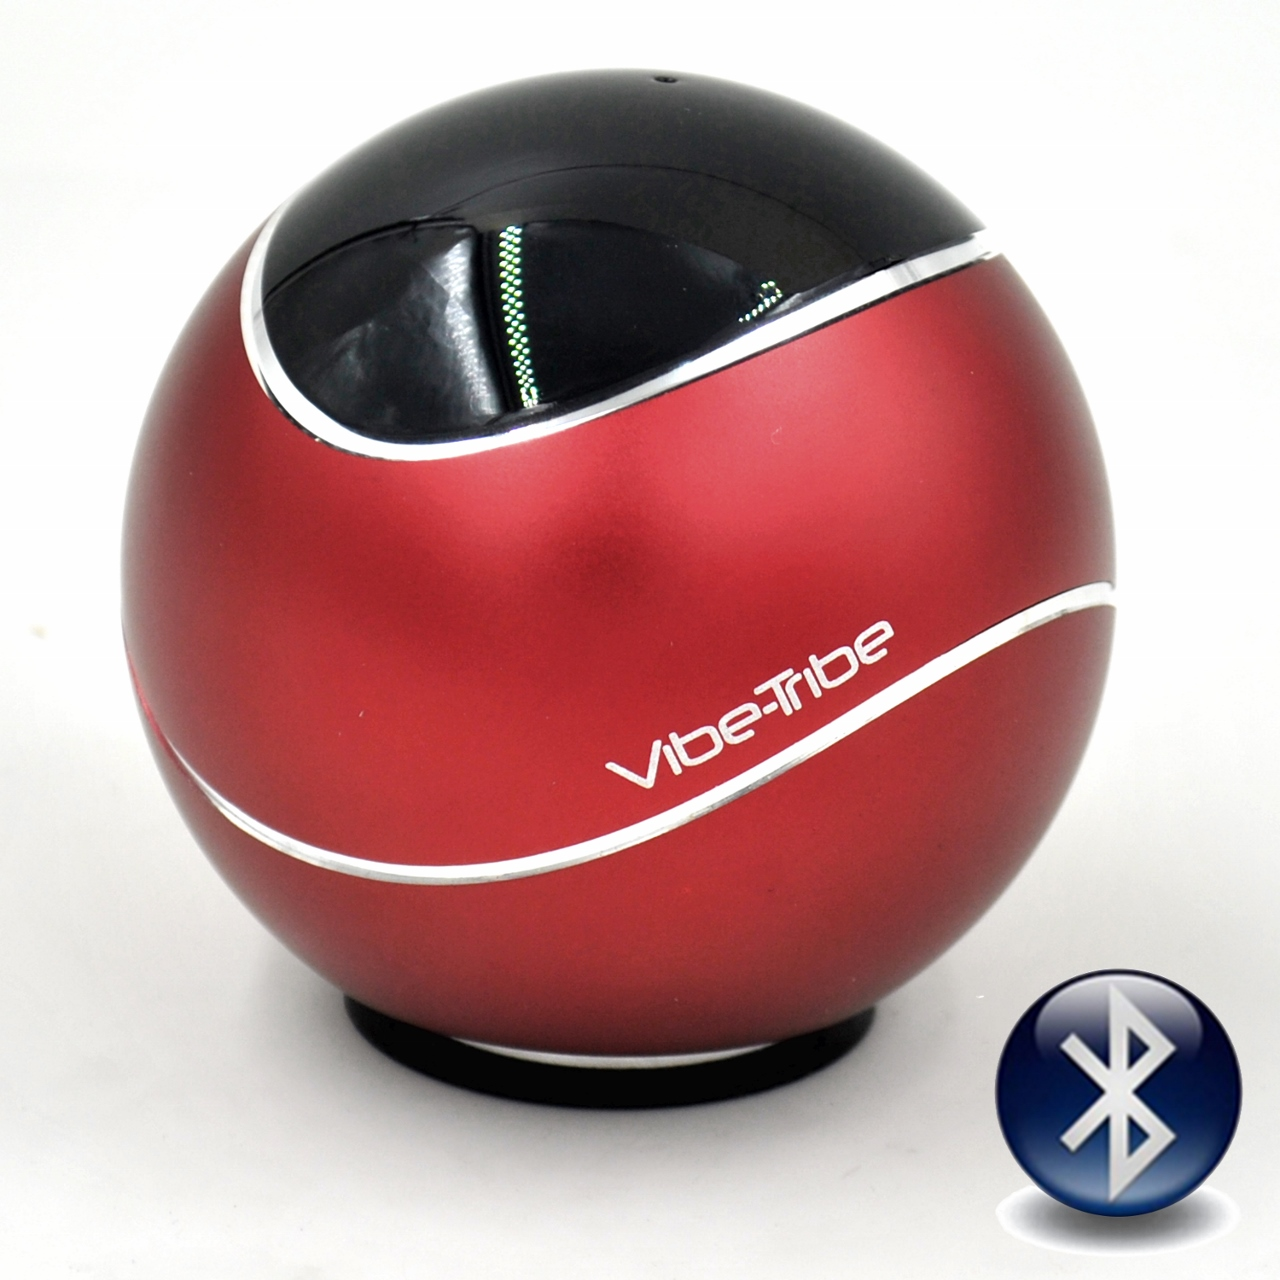 Orbit vibe-tribe bluetooth vibration resonance speaker ruby red 02 1280x1280